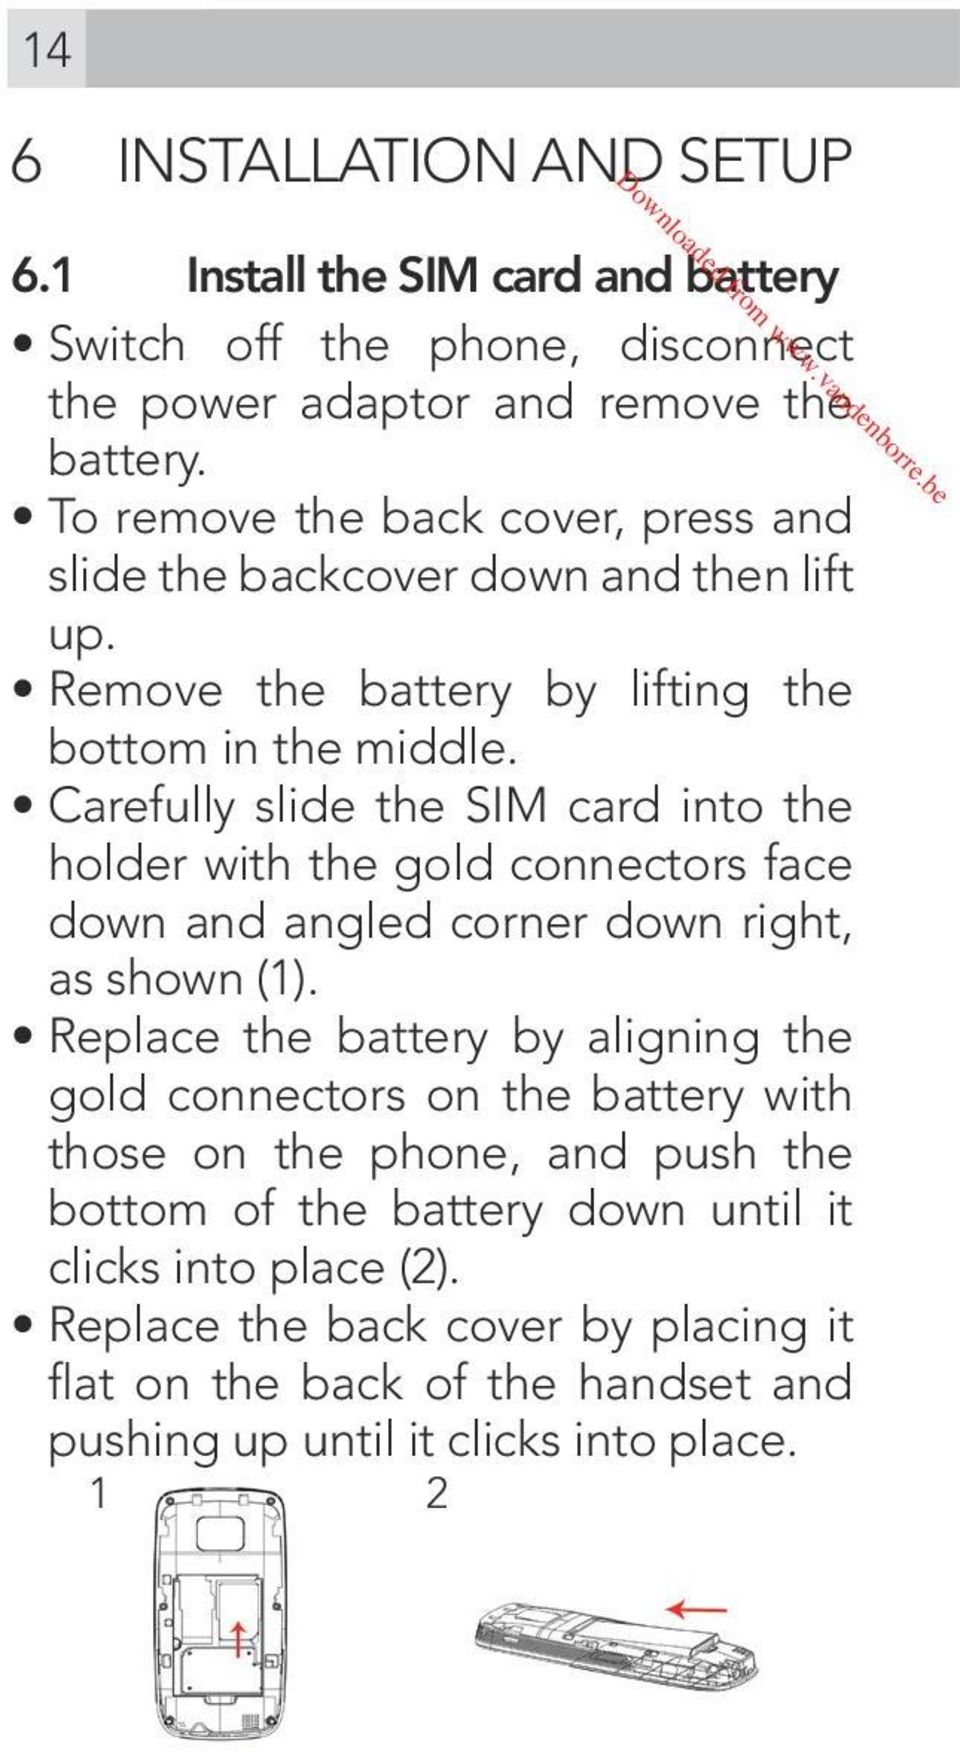 Carefully slide the SIM card into the holder with the gold connectors face down and angled corner down right, as shown (1).